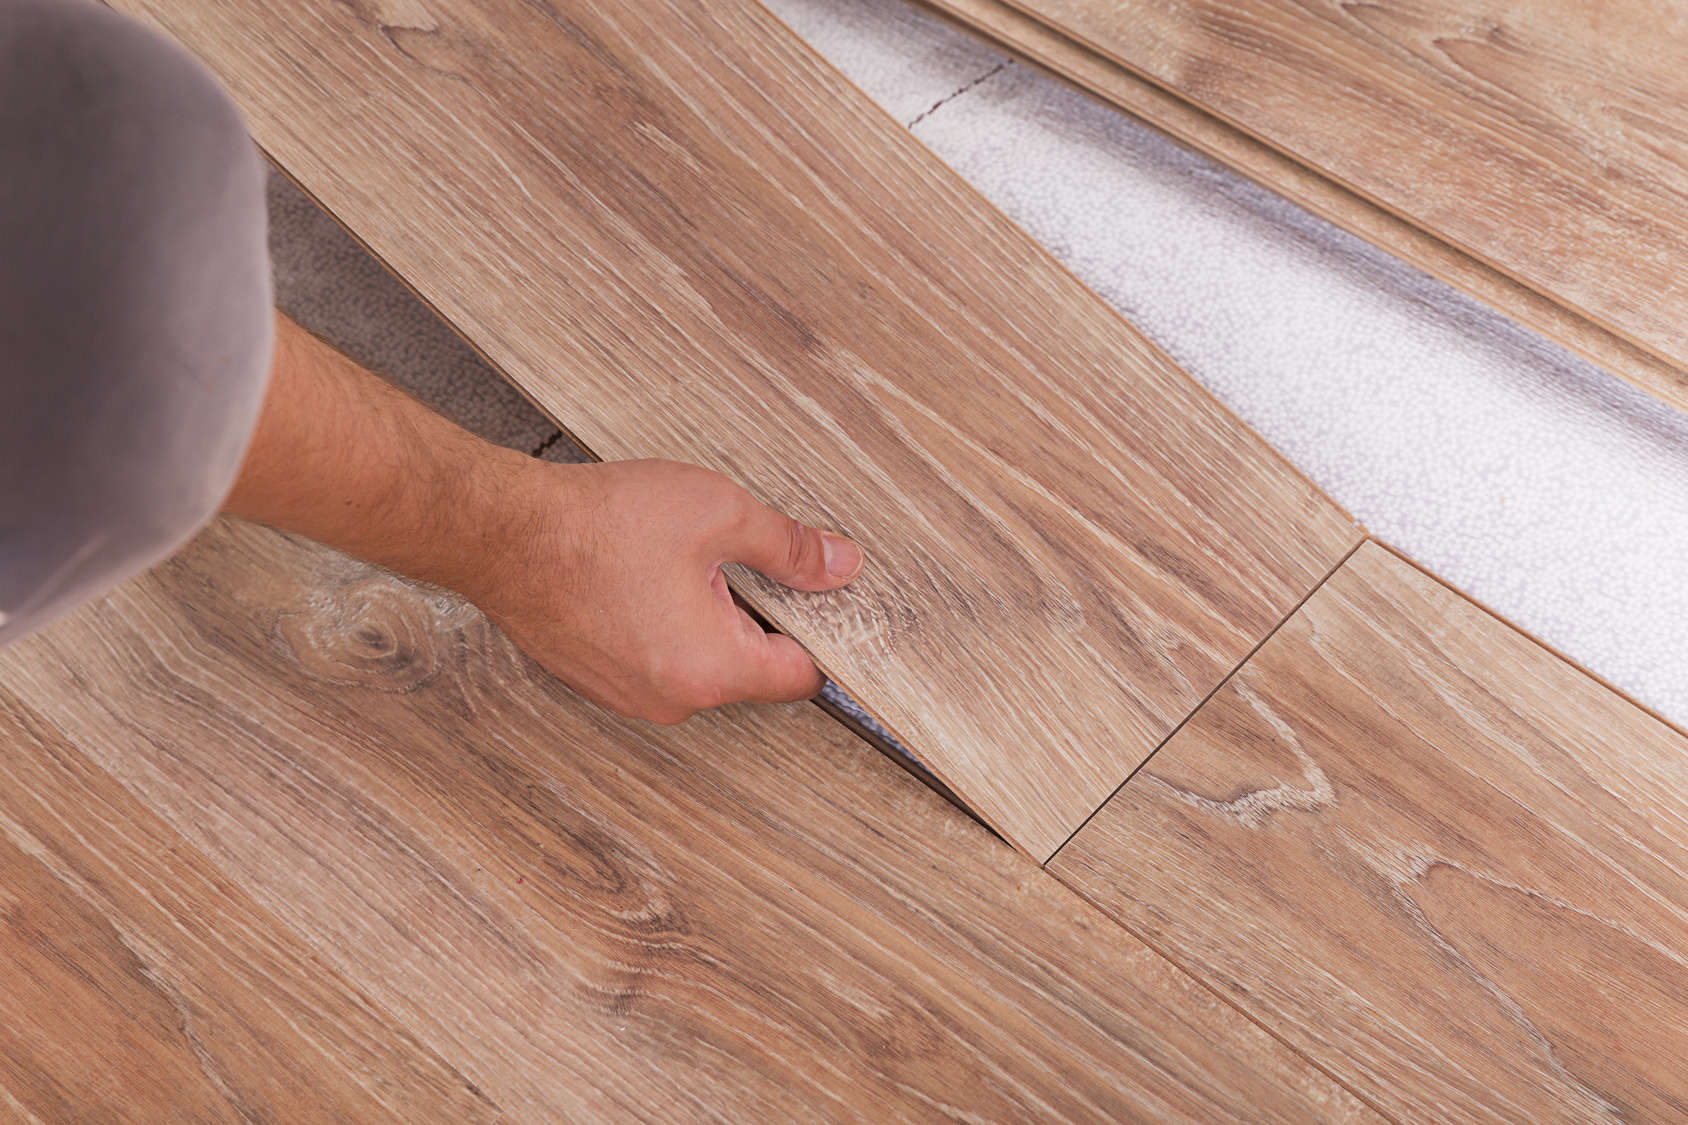 Professional hardwood flooring installation in a Portland, OR home